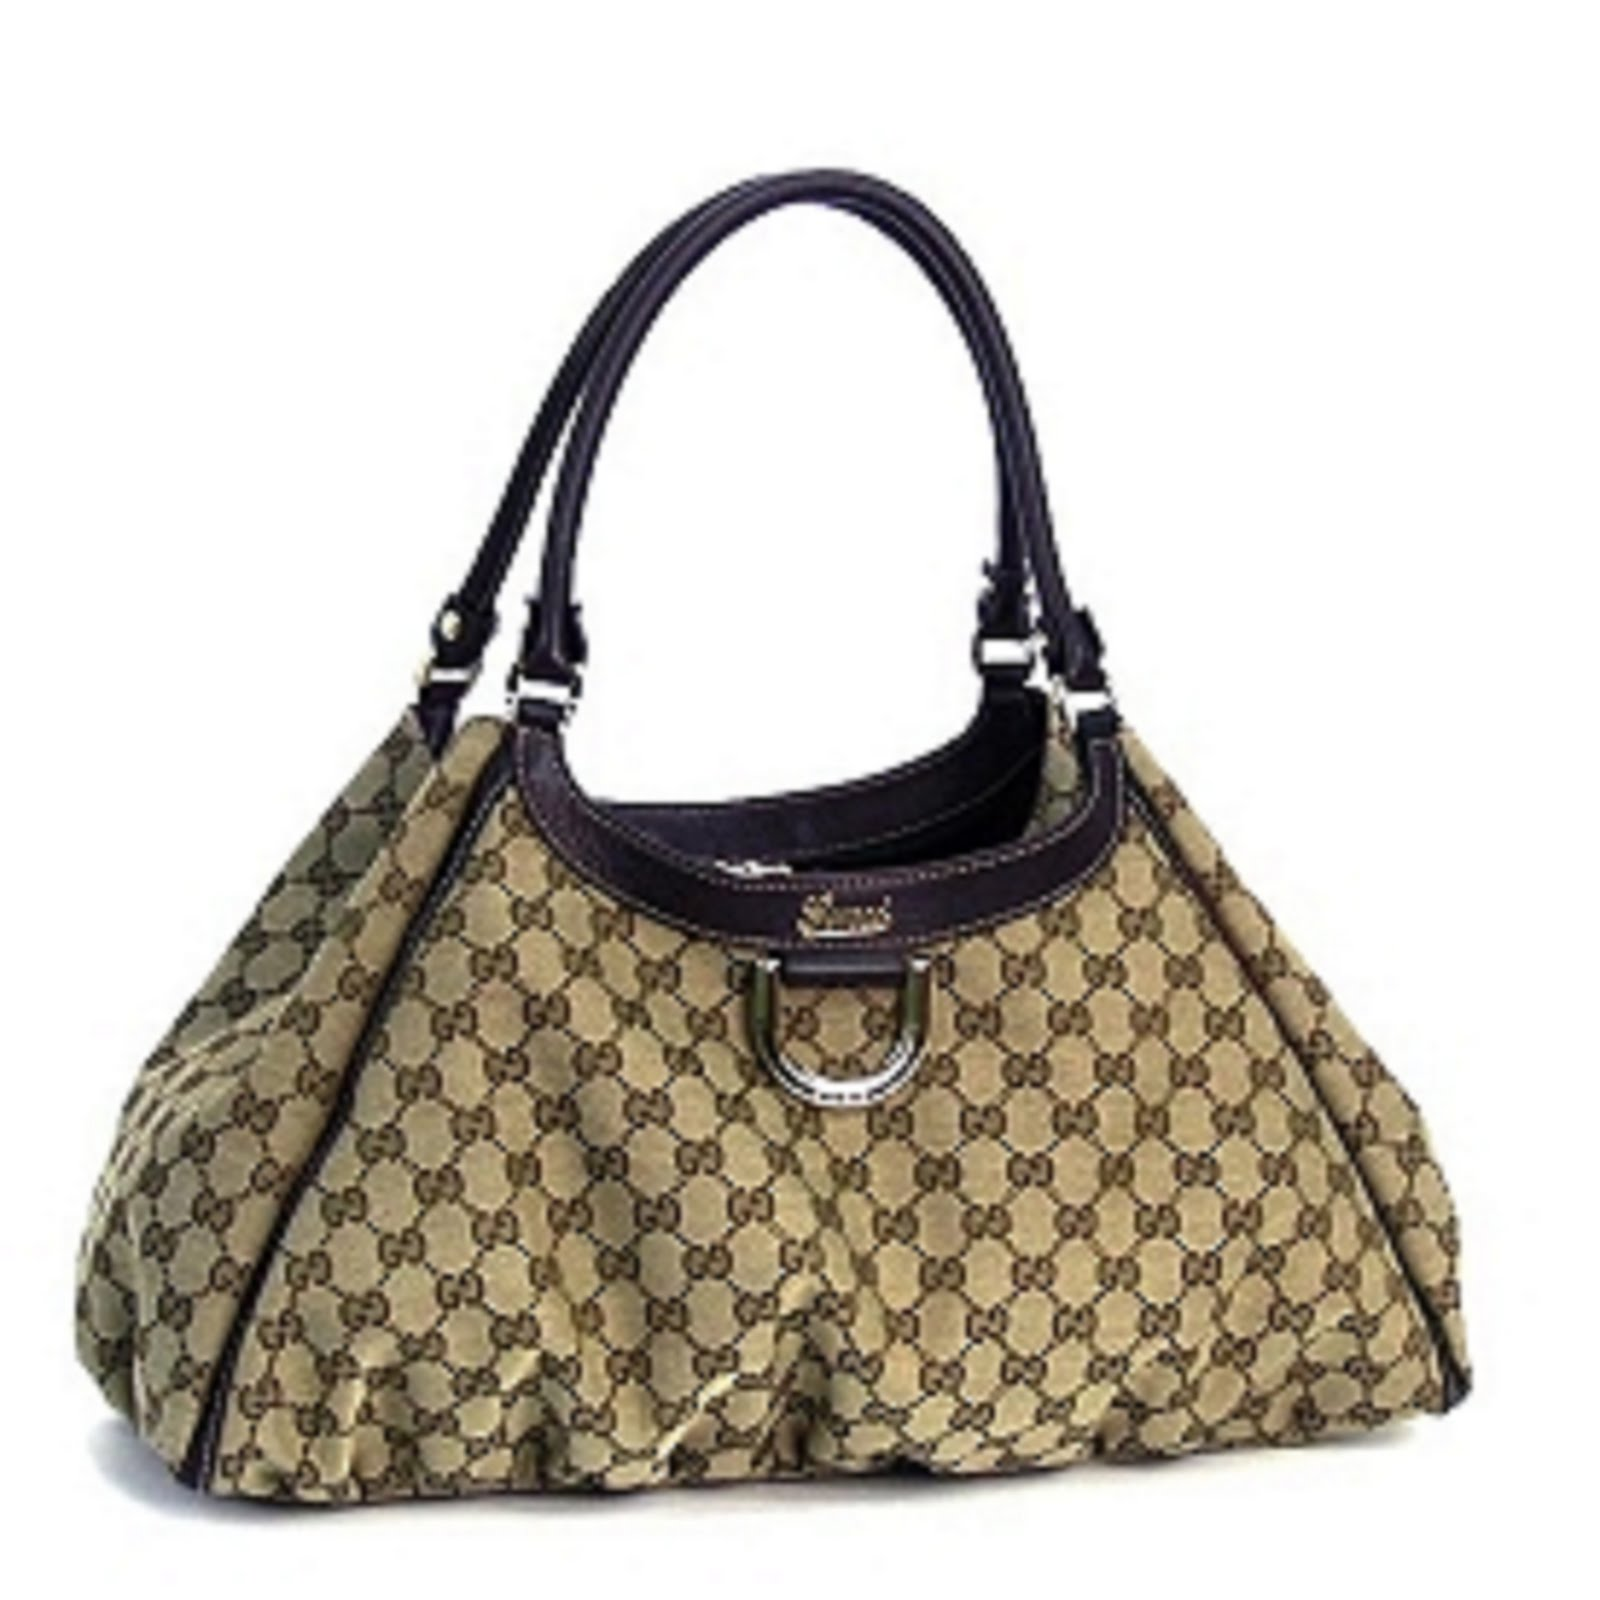 45070e430e4 Gucci Beige Brown Large D Gold Shoulder Bag.